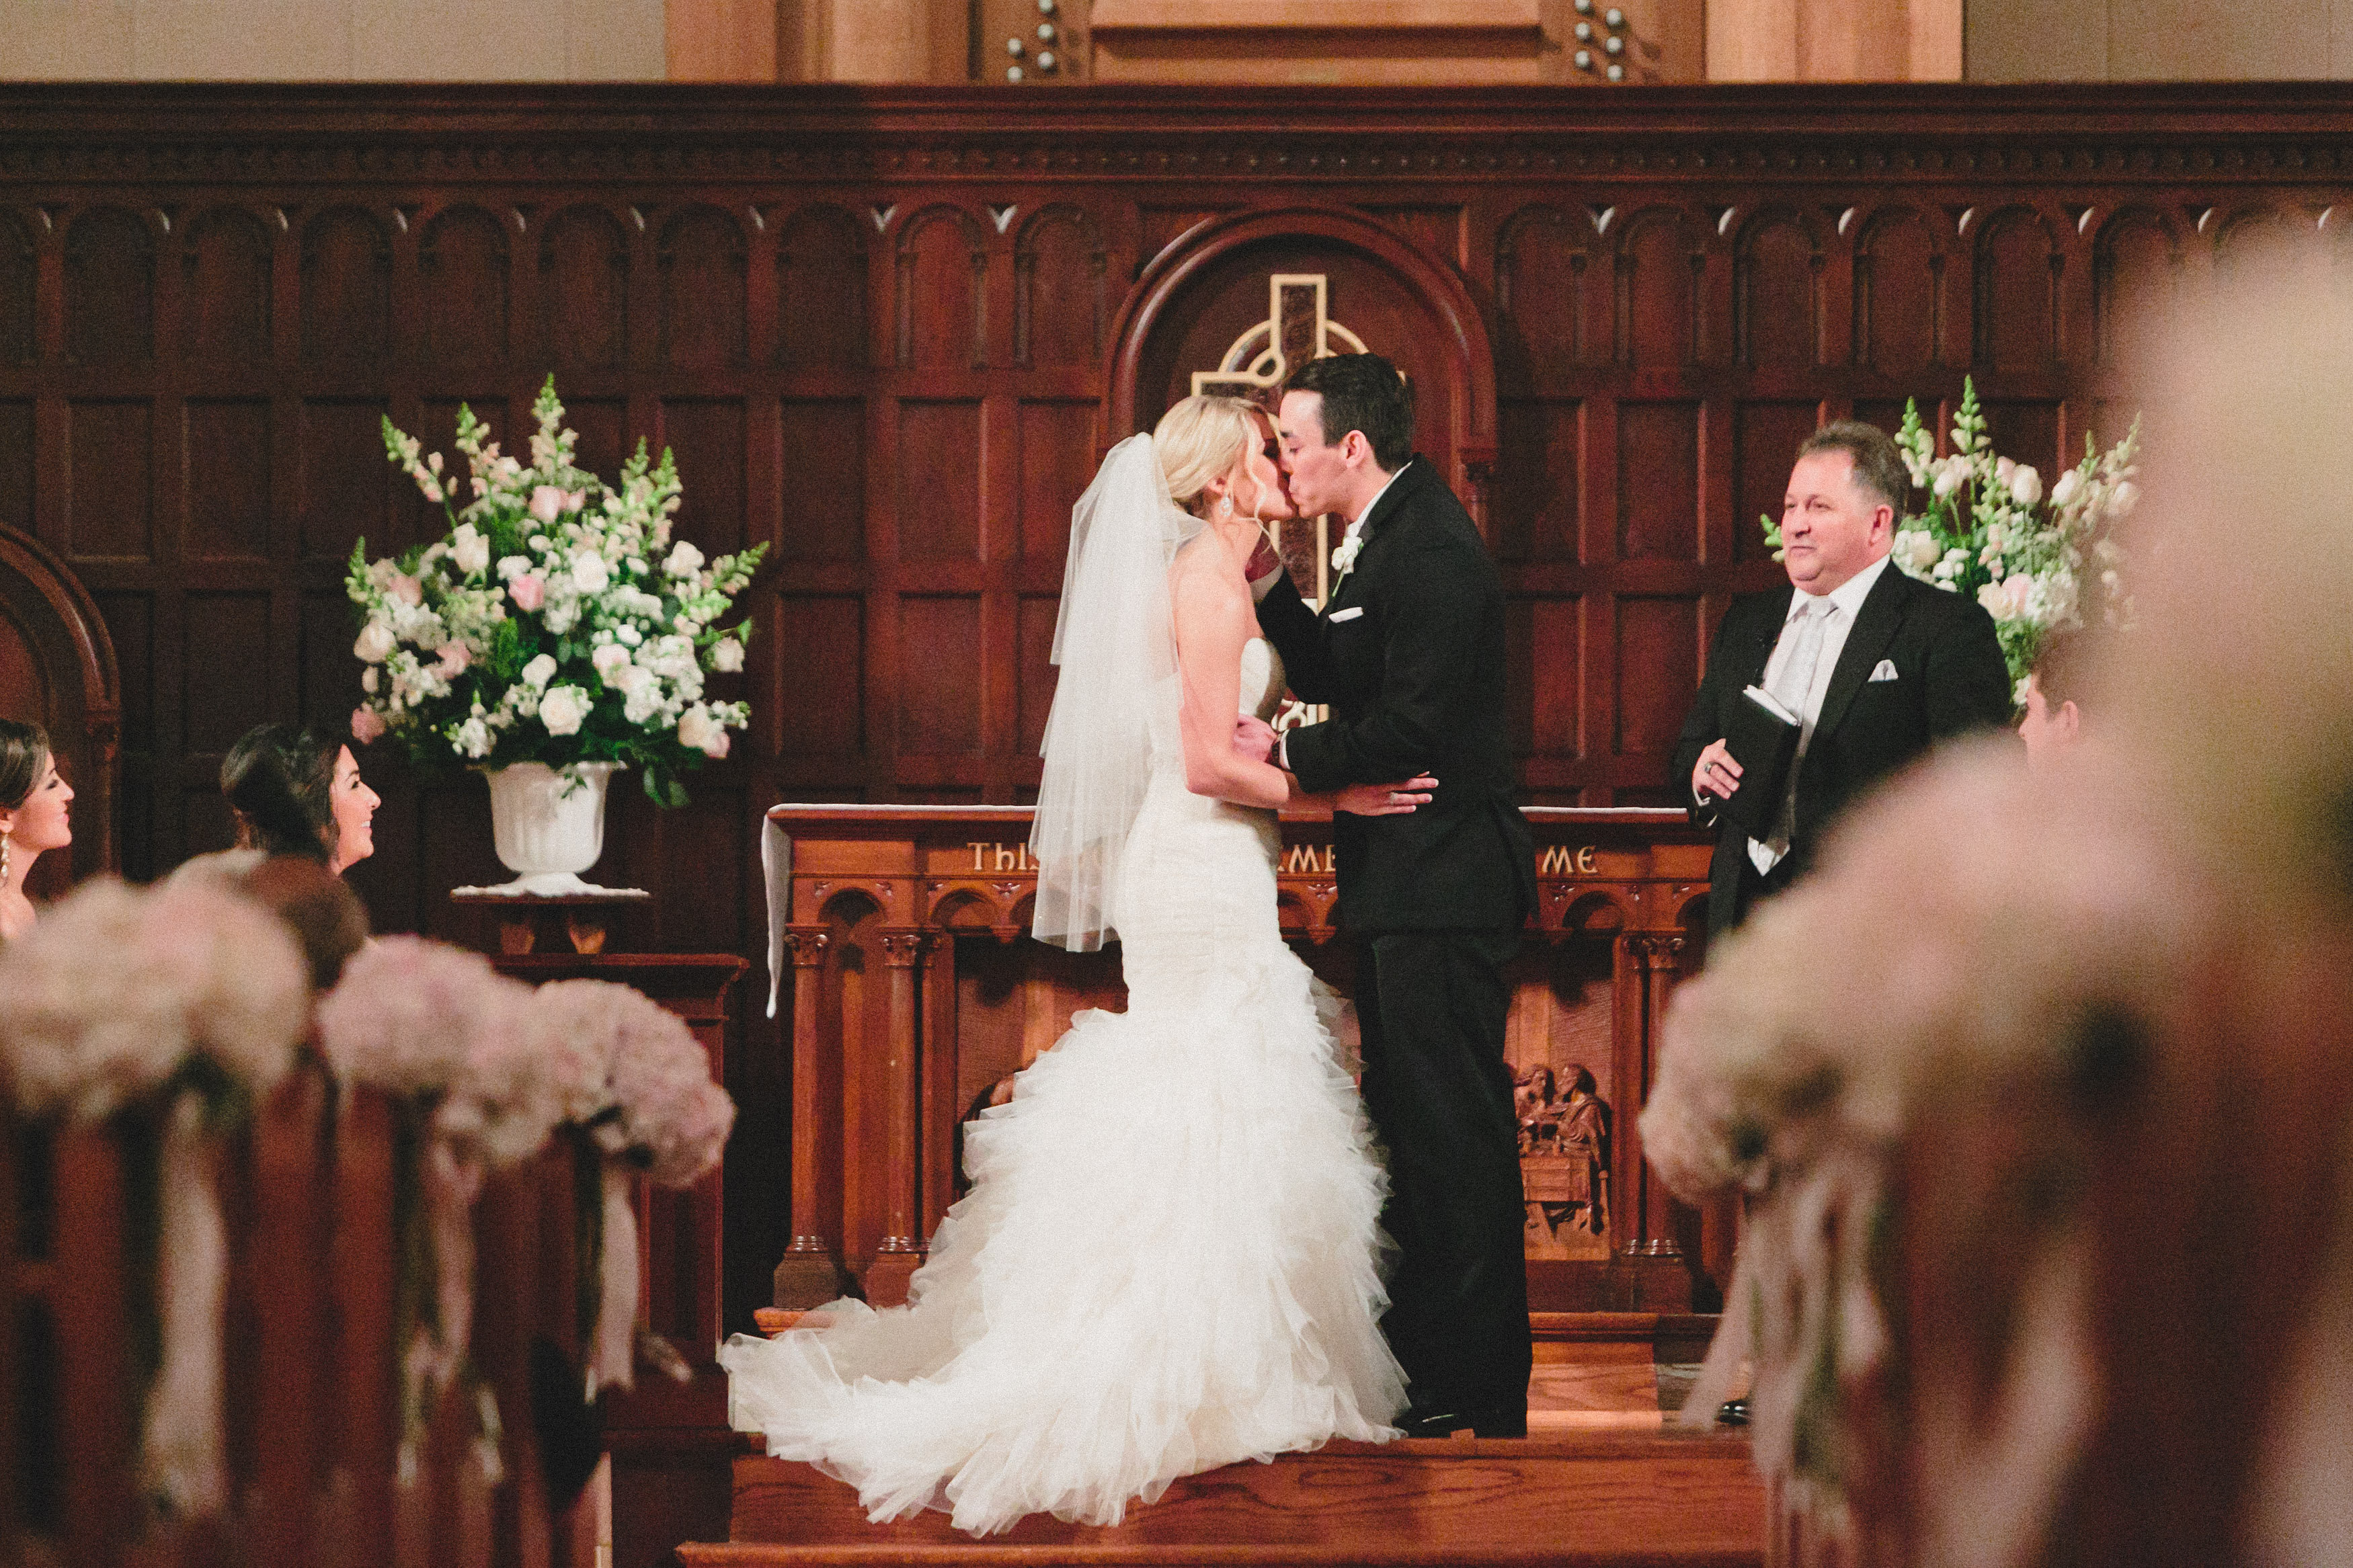 The Wedding of Lindsey + Inez | A Fairytale Romance - A Day To Remember